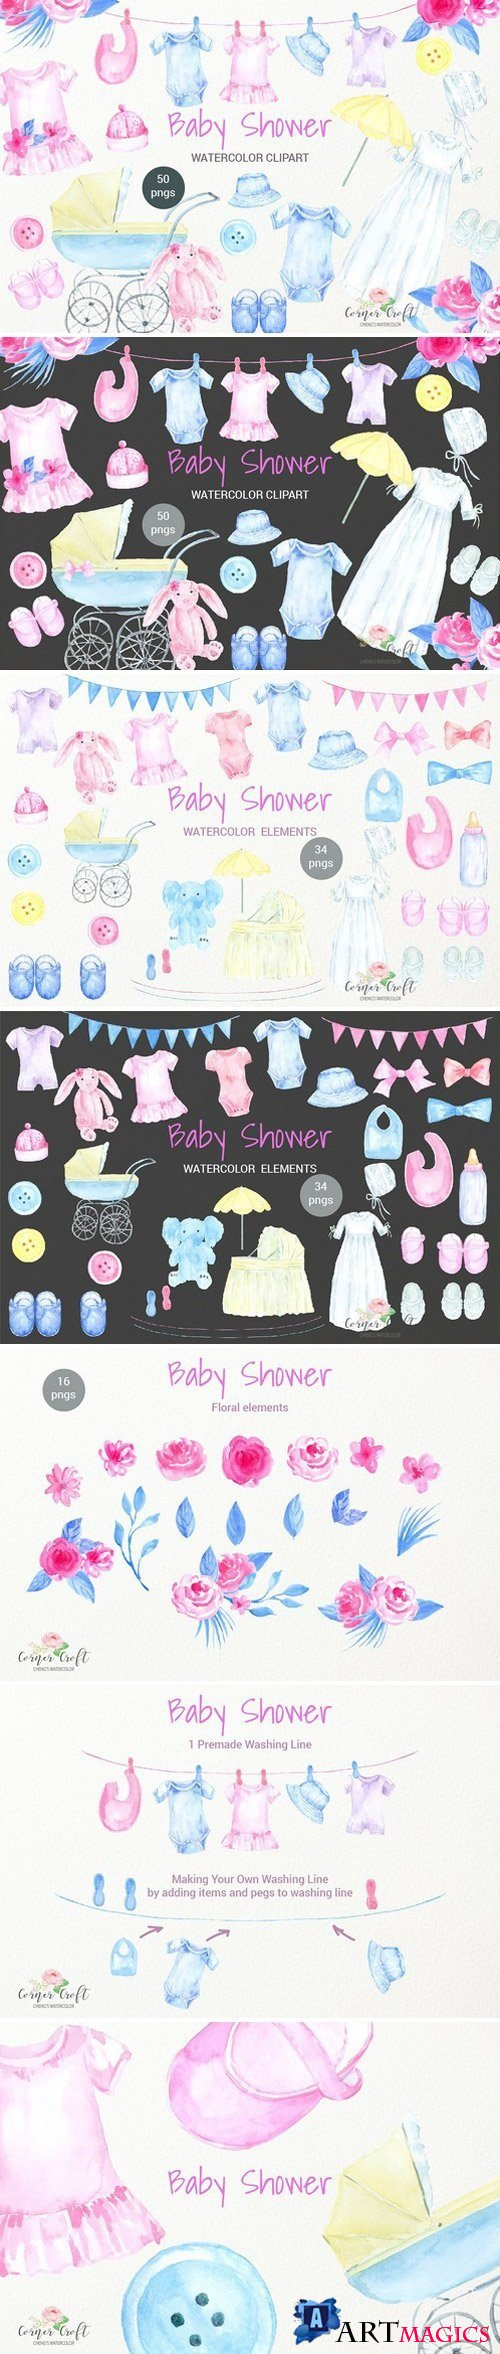 Watercolor Baby Shower Clipart 2232641